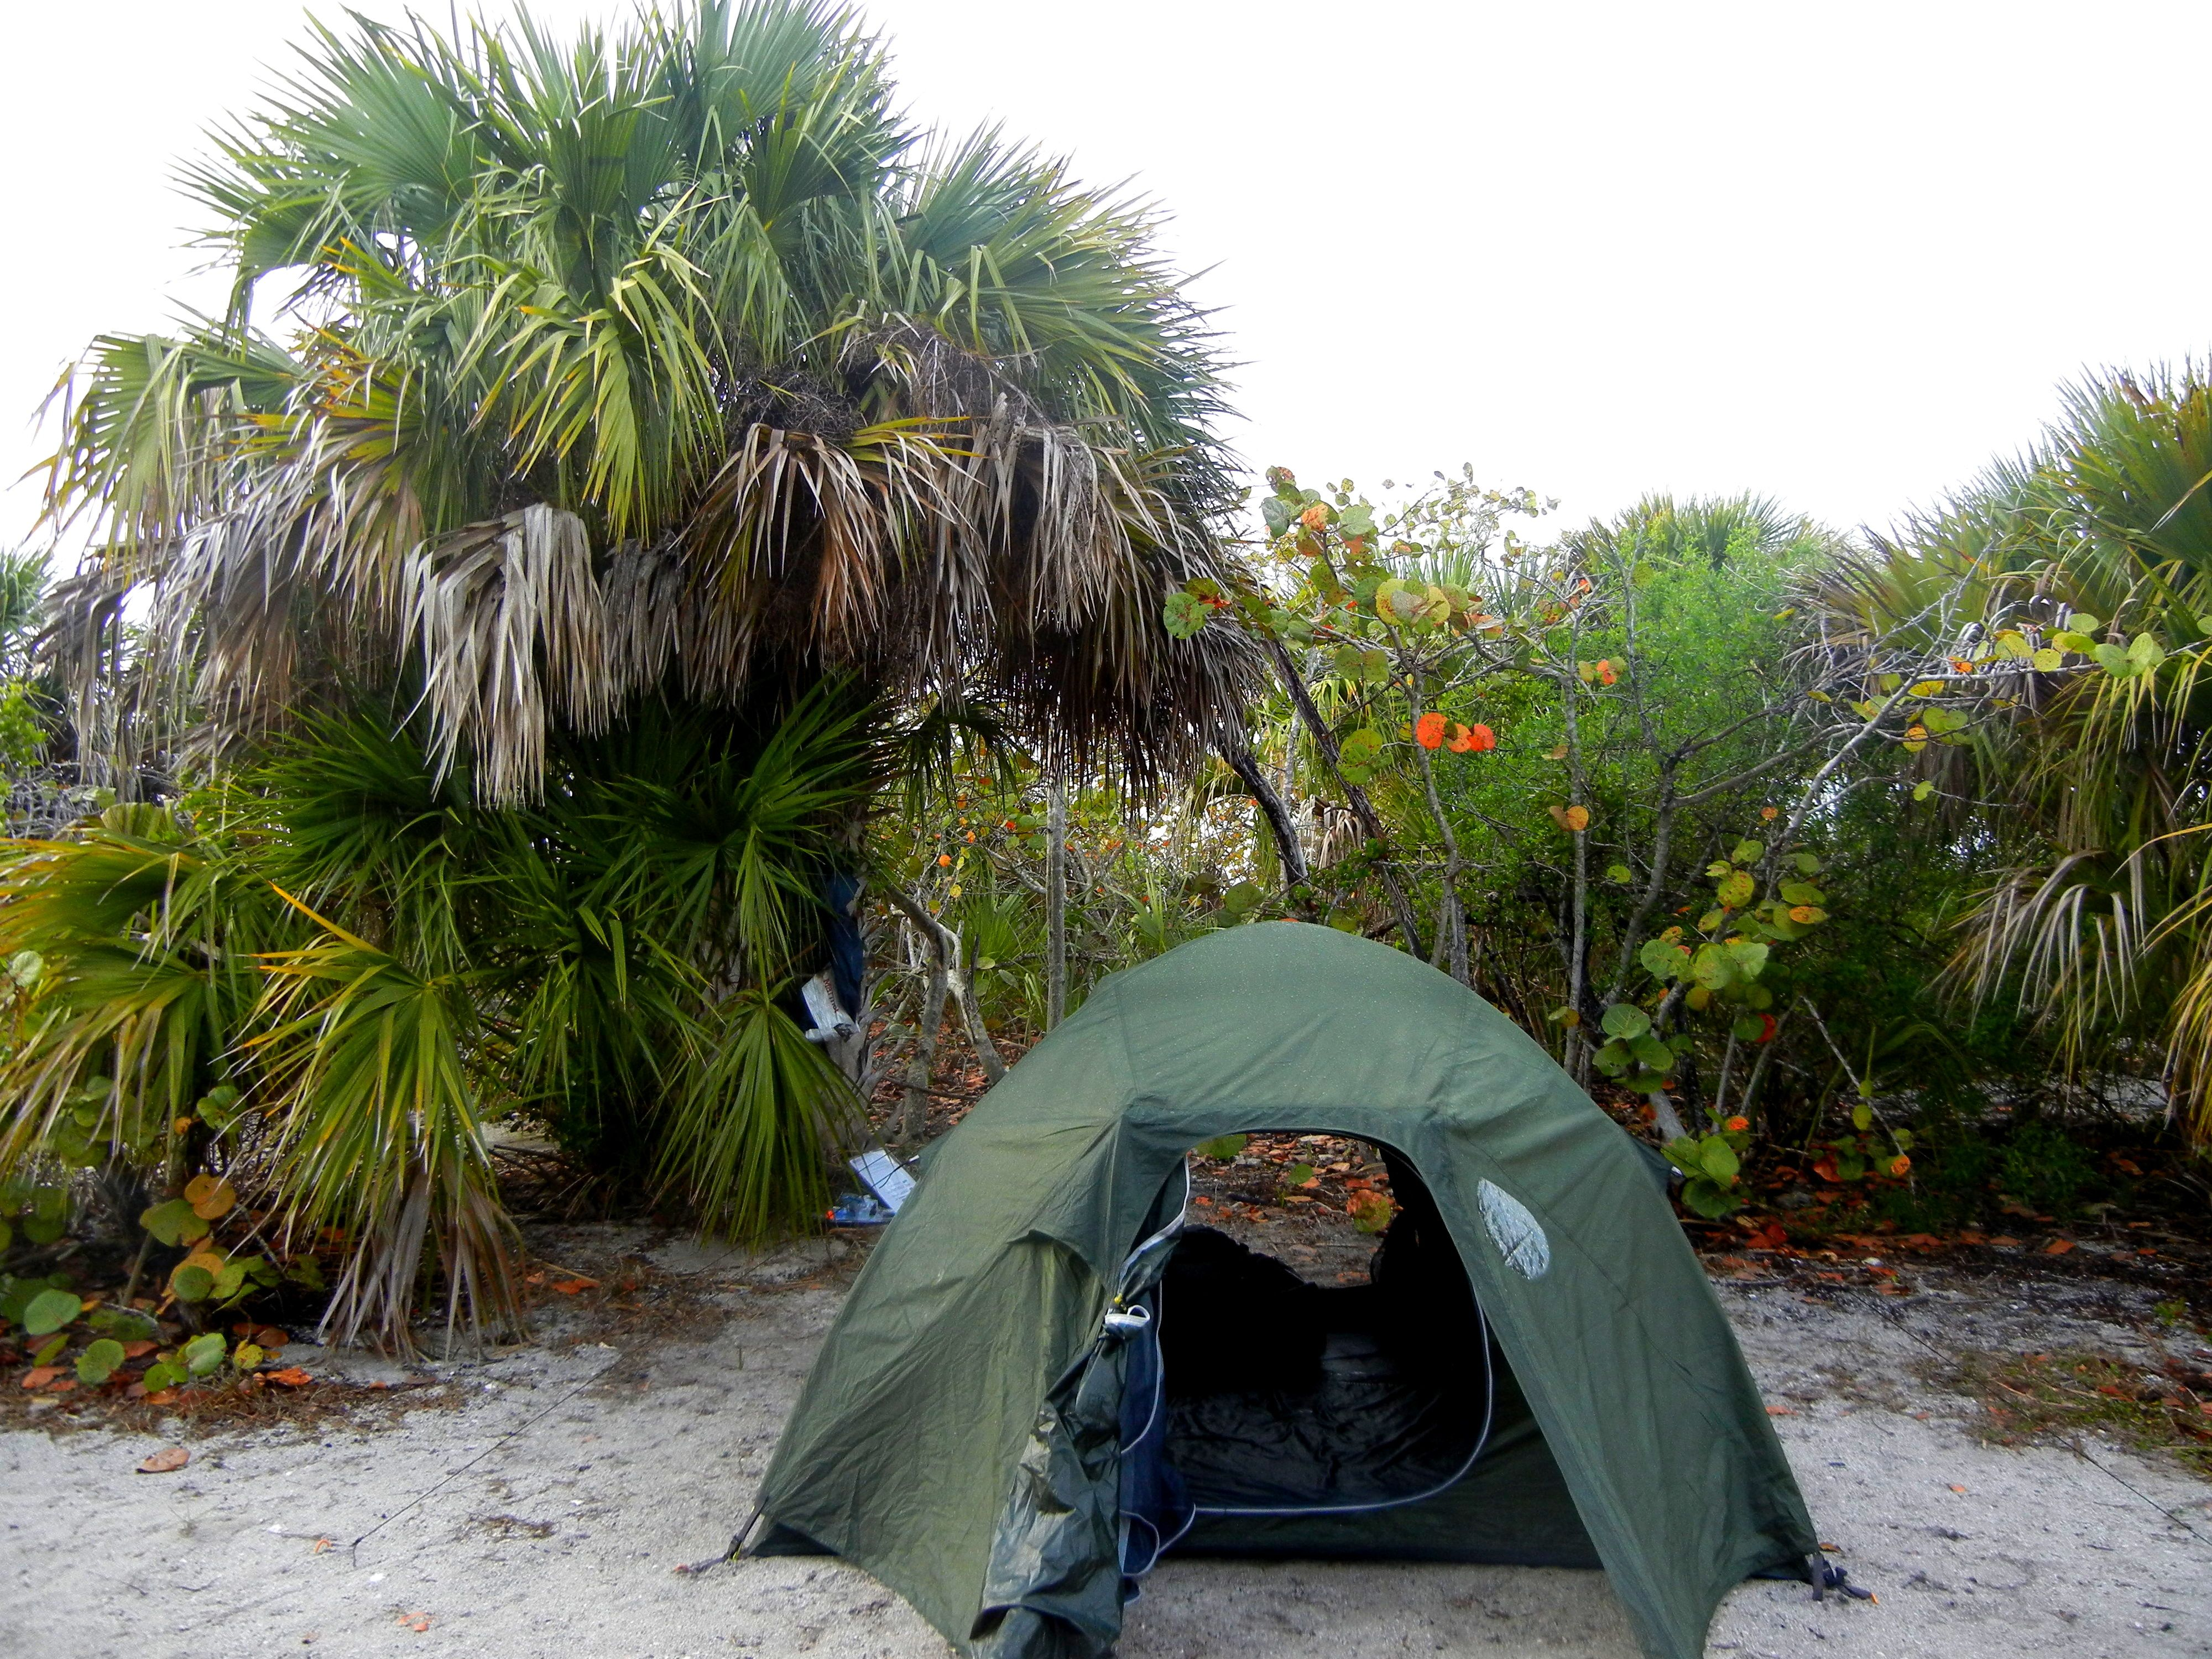 Camp On The Beach At Cayo Costa State Park On The West